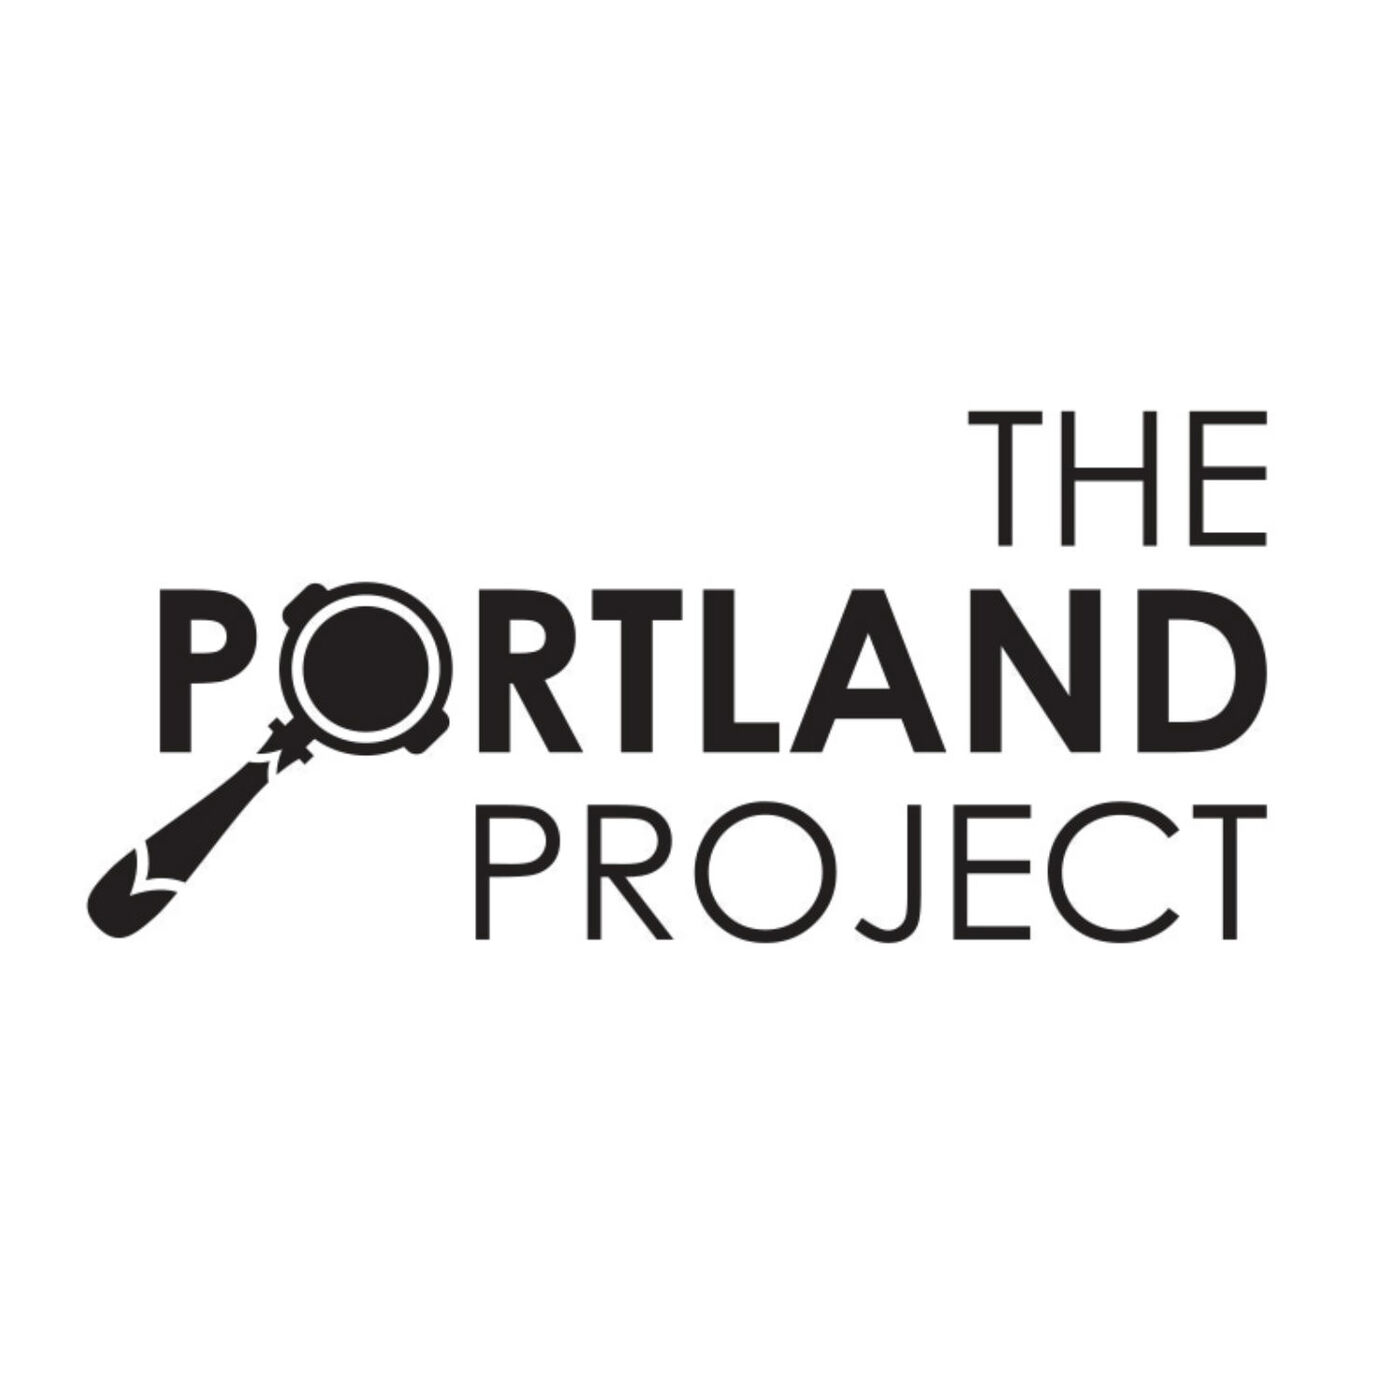 Episode 7 - Wayne Oberholzer from The Portland Project